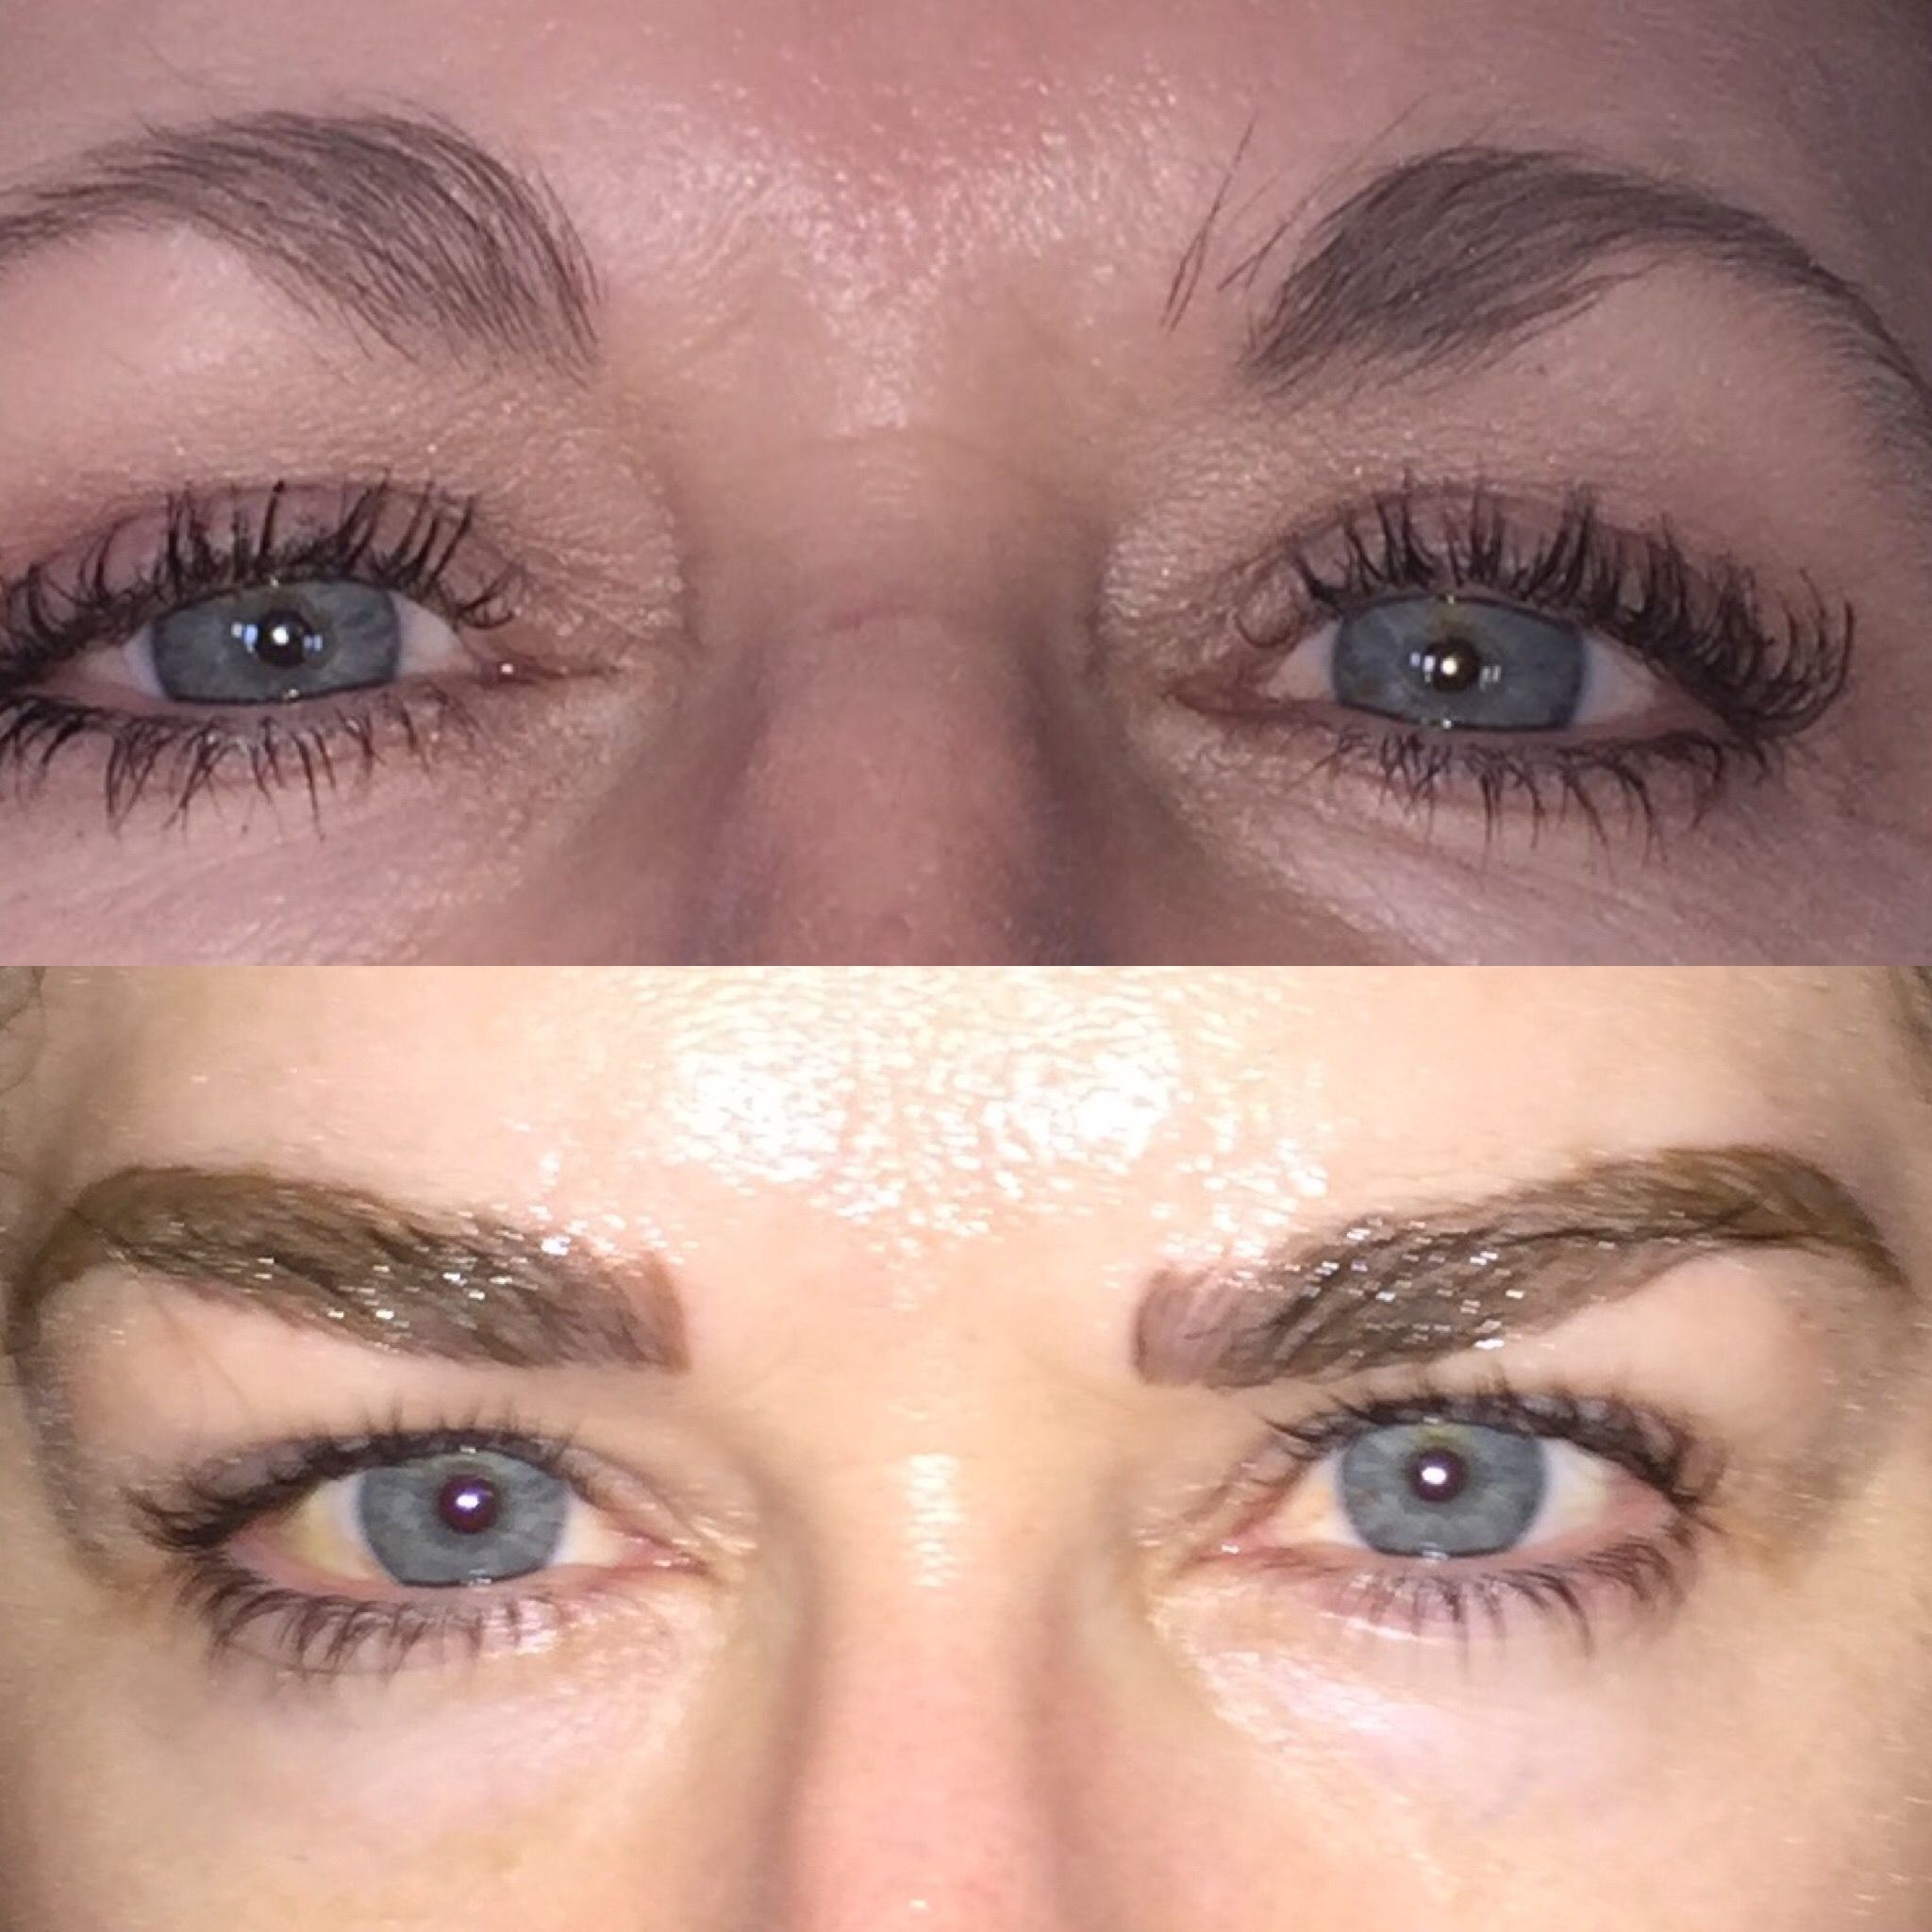 The Before And Morning After Microblading Picture Still Laying On My Pillow Microblading Eyebrows Pictures